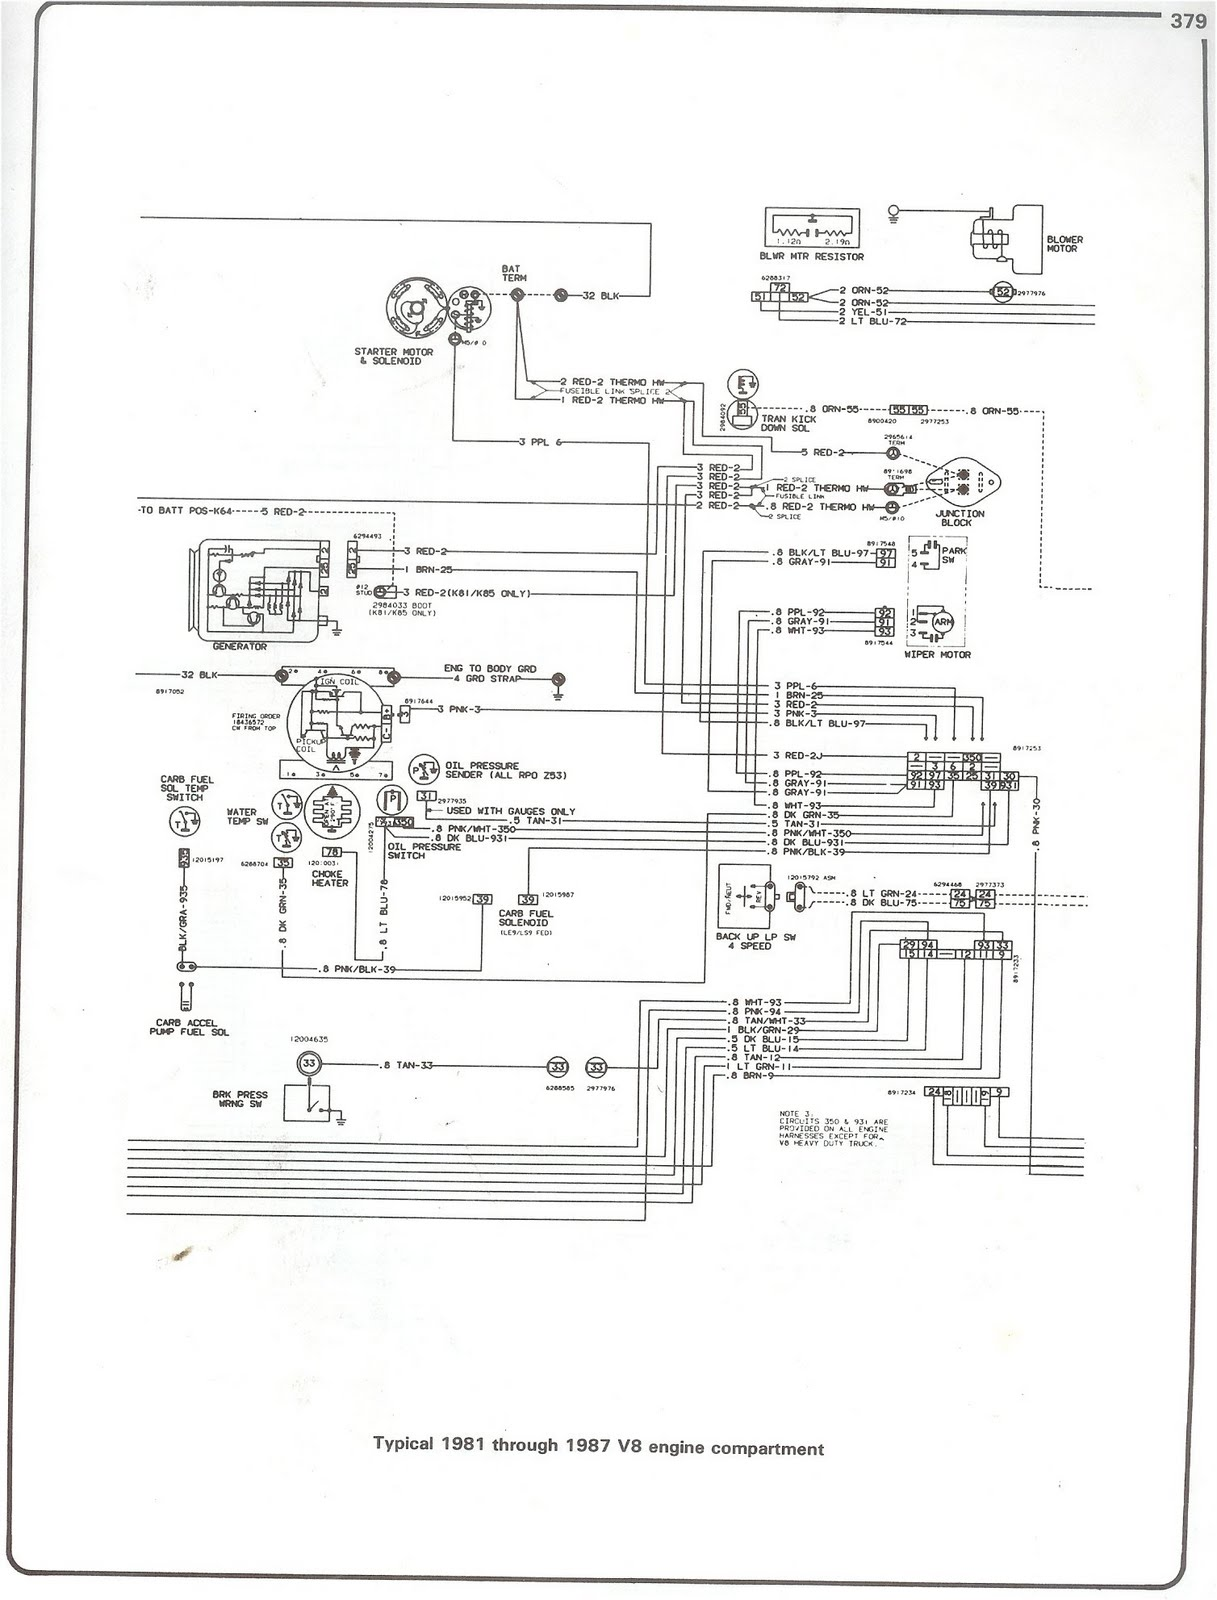 1978 chevy truck wiring harness data diagram schematic 1978 chevy truck wiring harness [ 1217 x 1600 Pixel ]